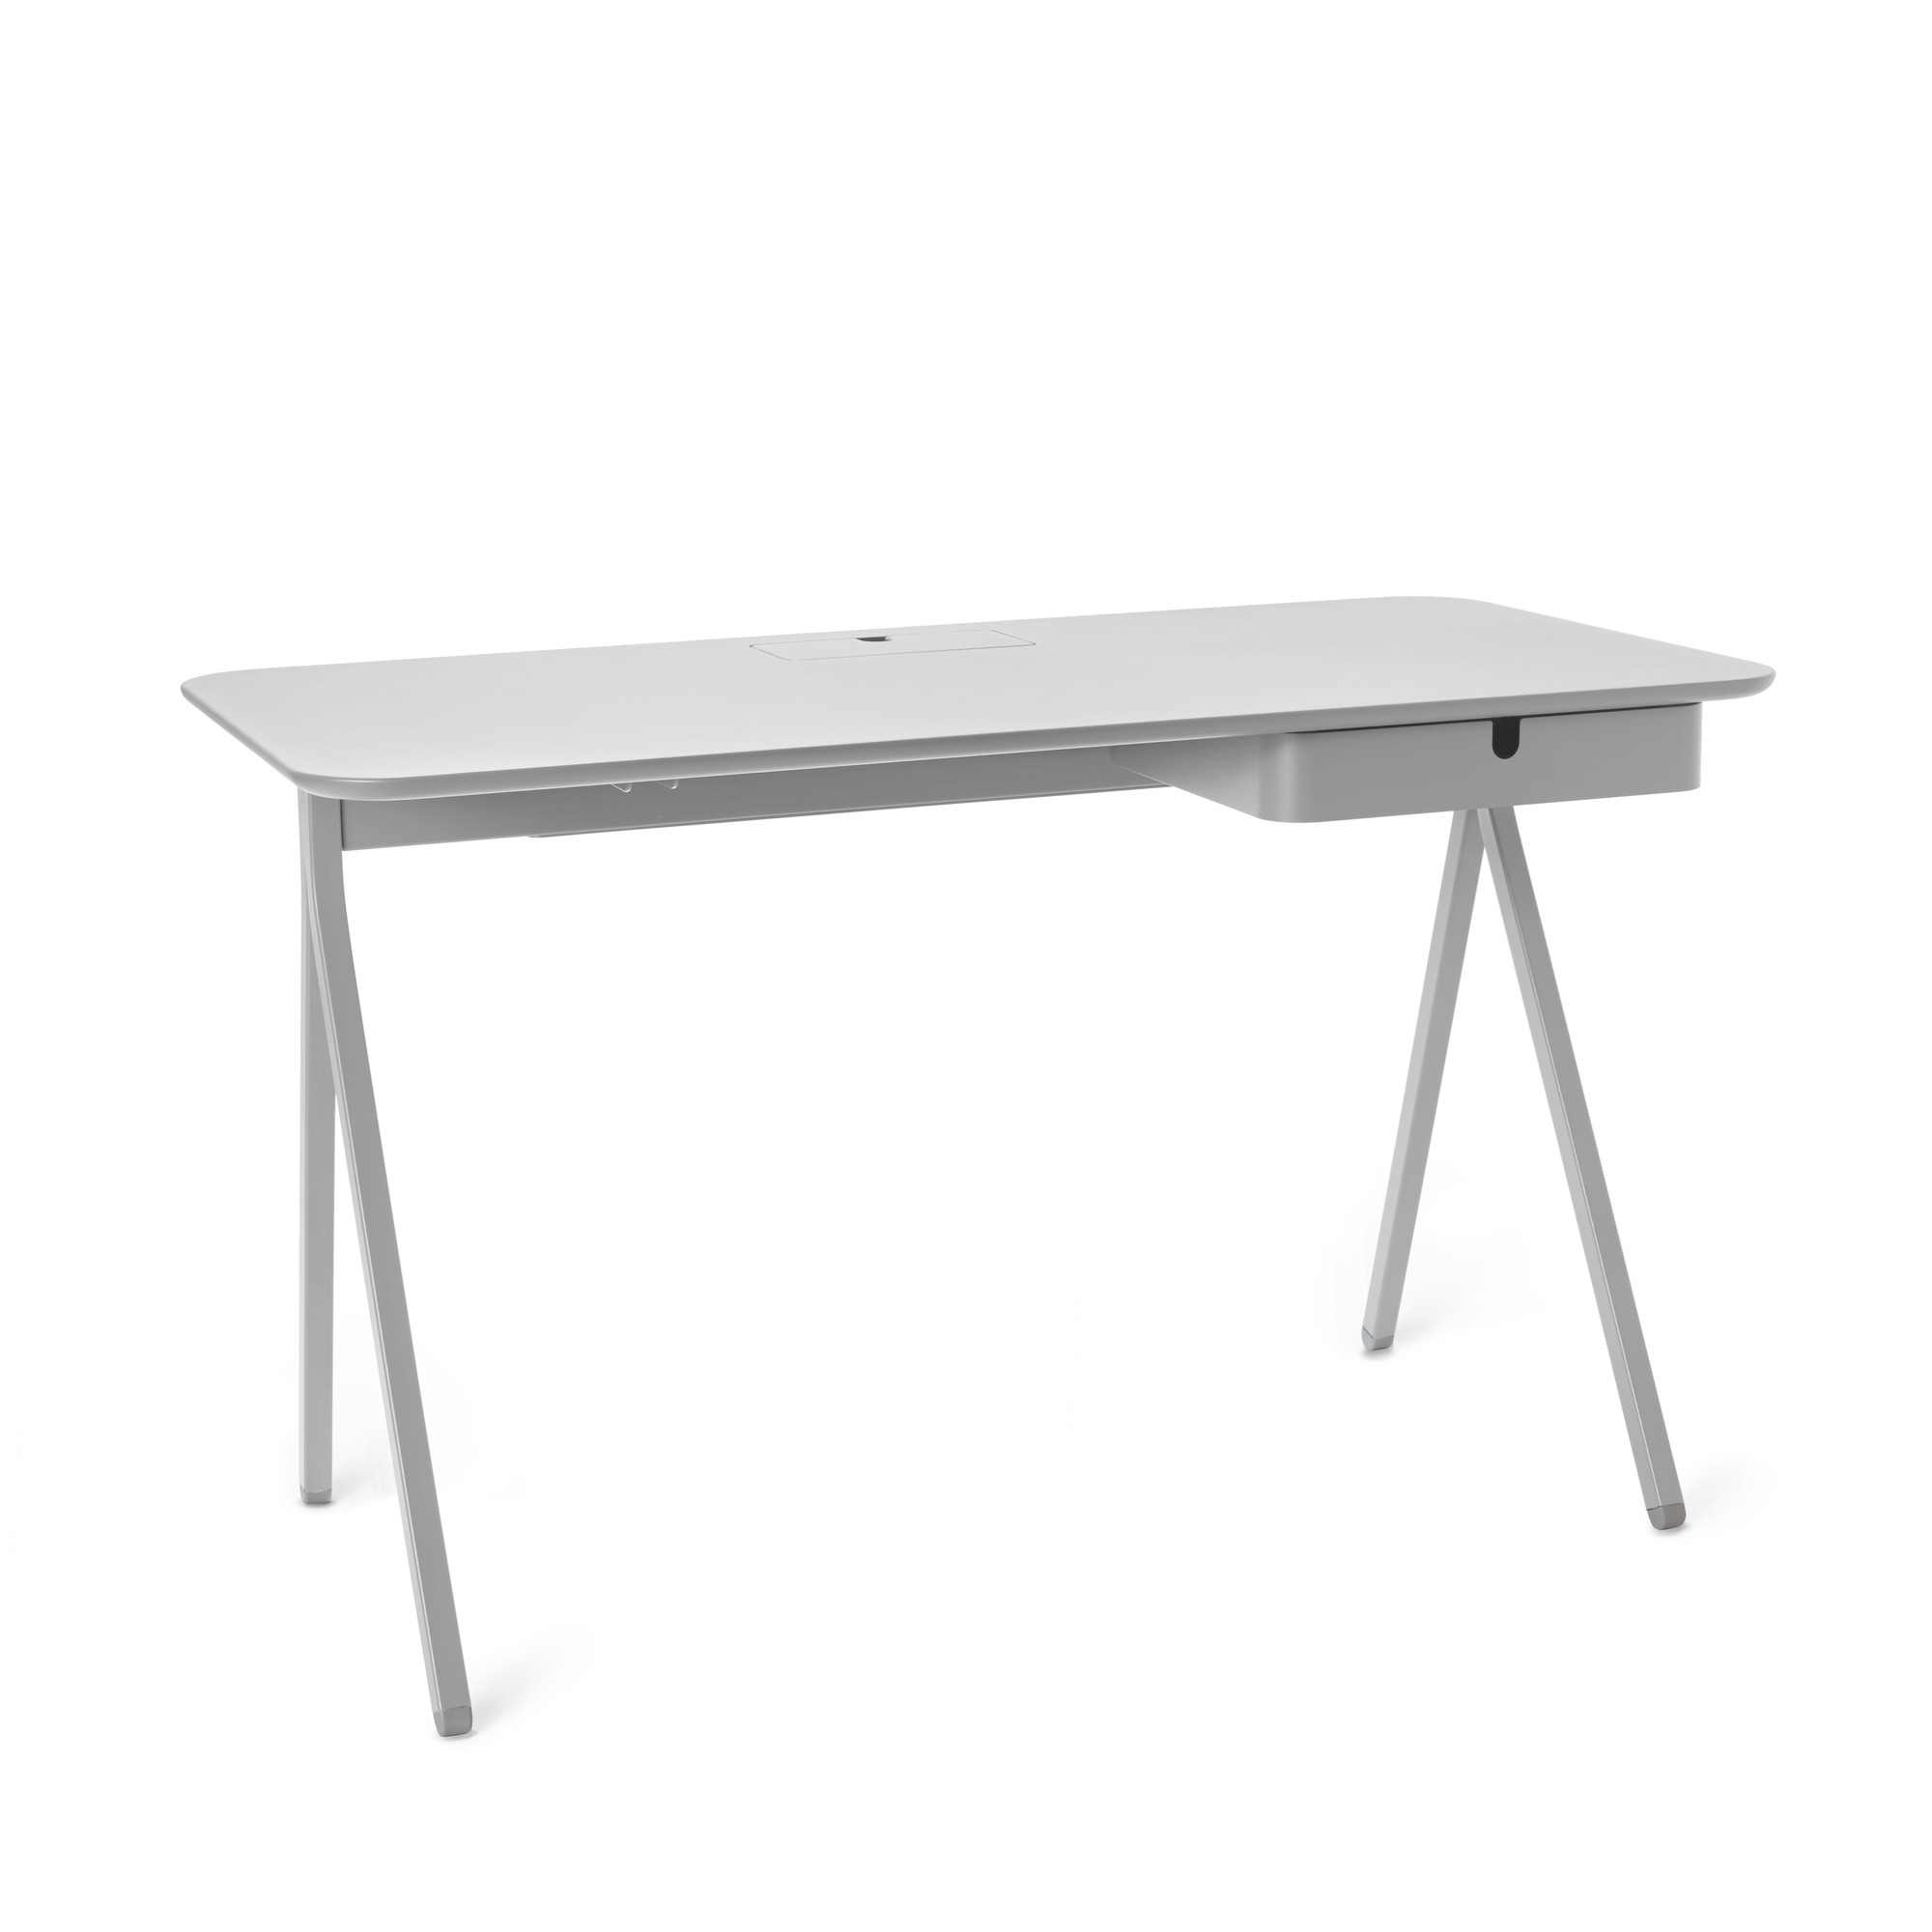 Light Gray Key Desk,Light Gray,hi Res. Loading Zoom